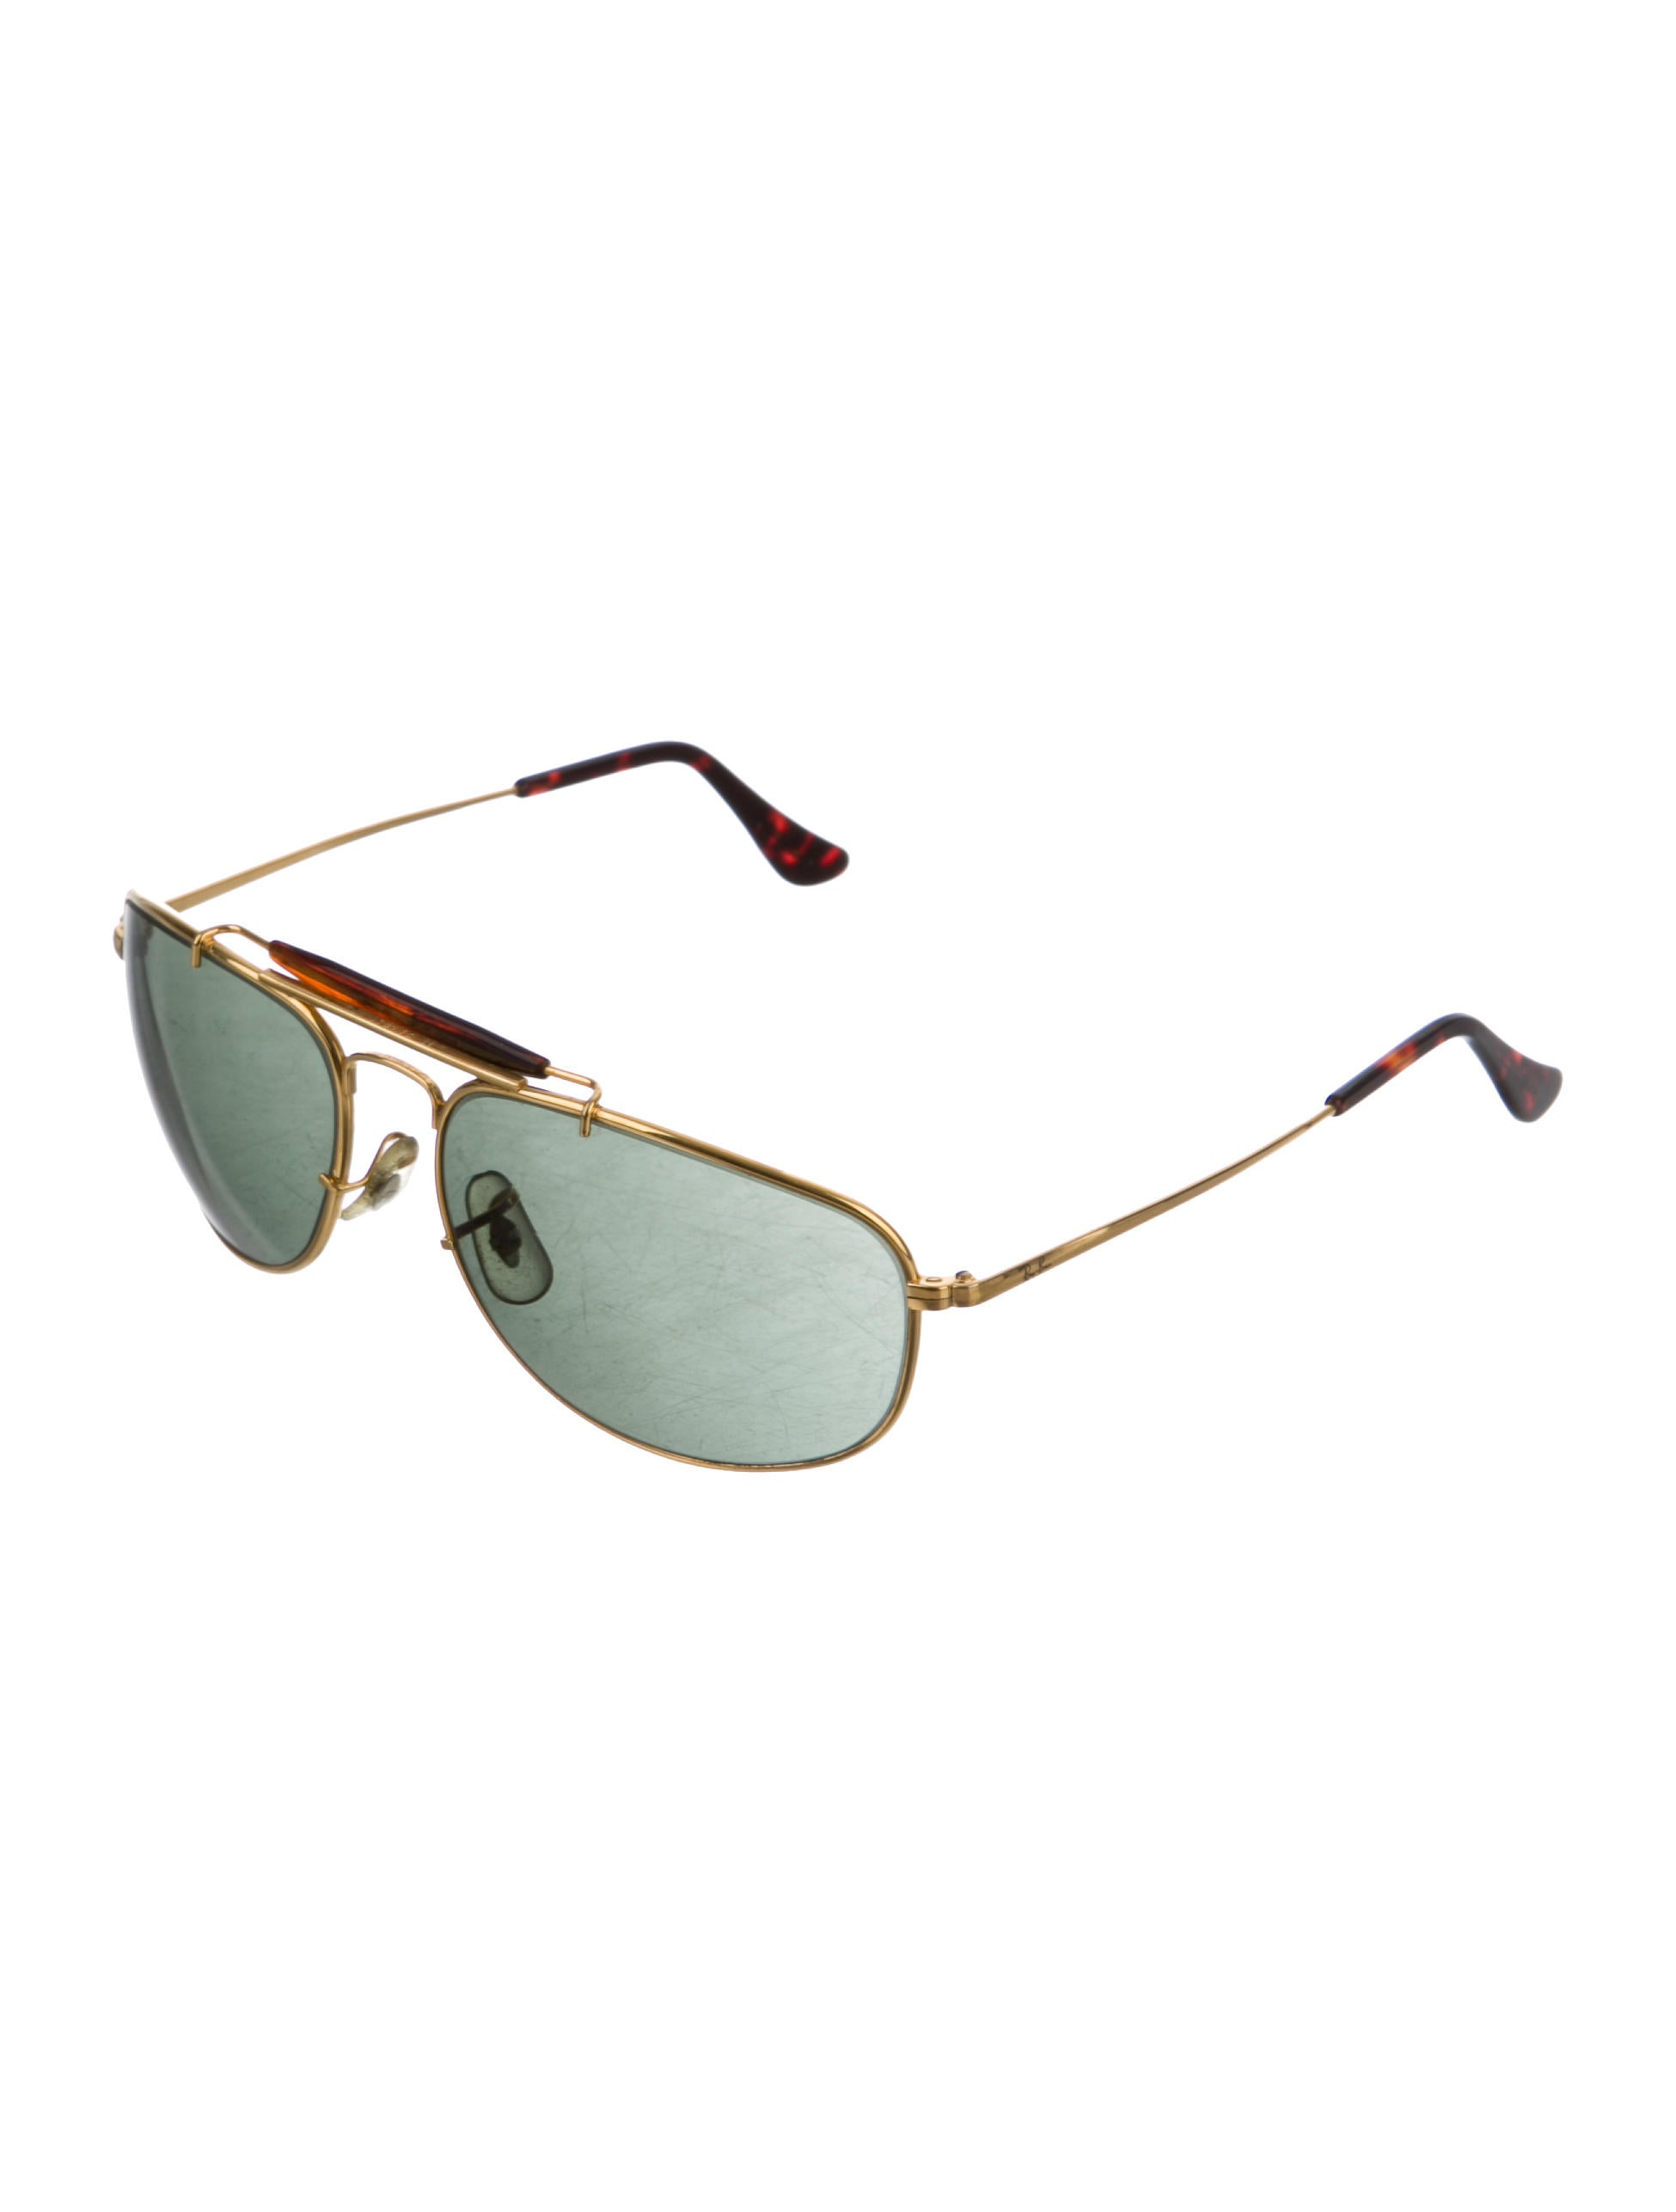 55305d7dbf7 Ray-Ban Olympic Games Gold-Tone Sunglasses - Accessories - WRX25364